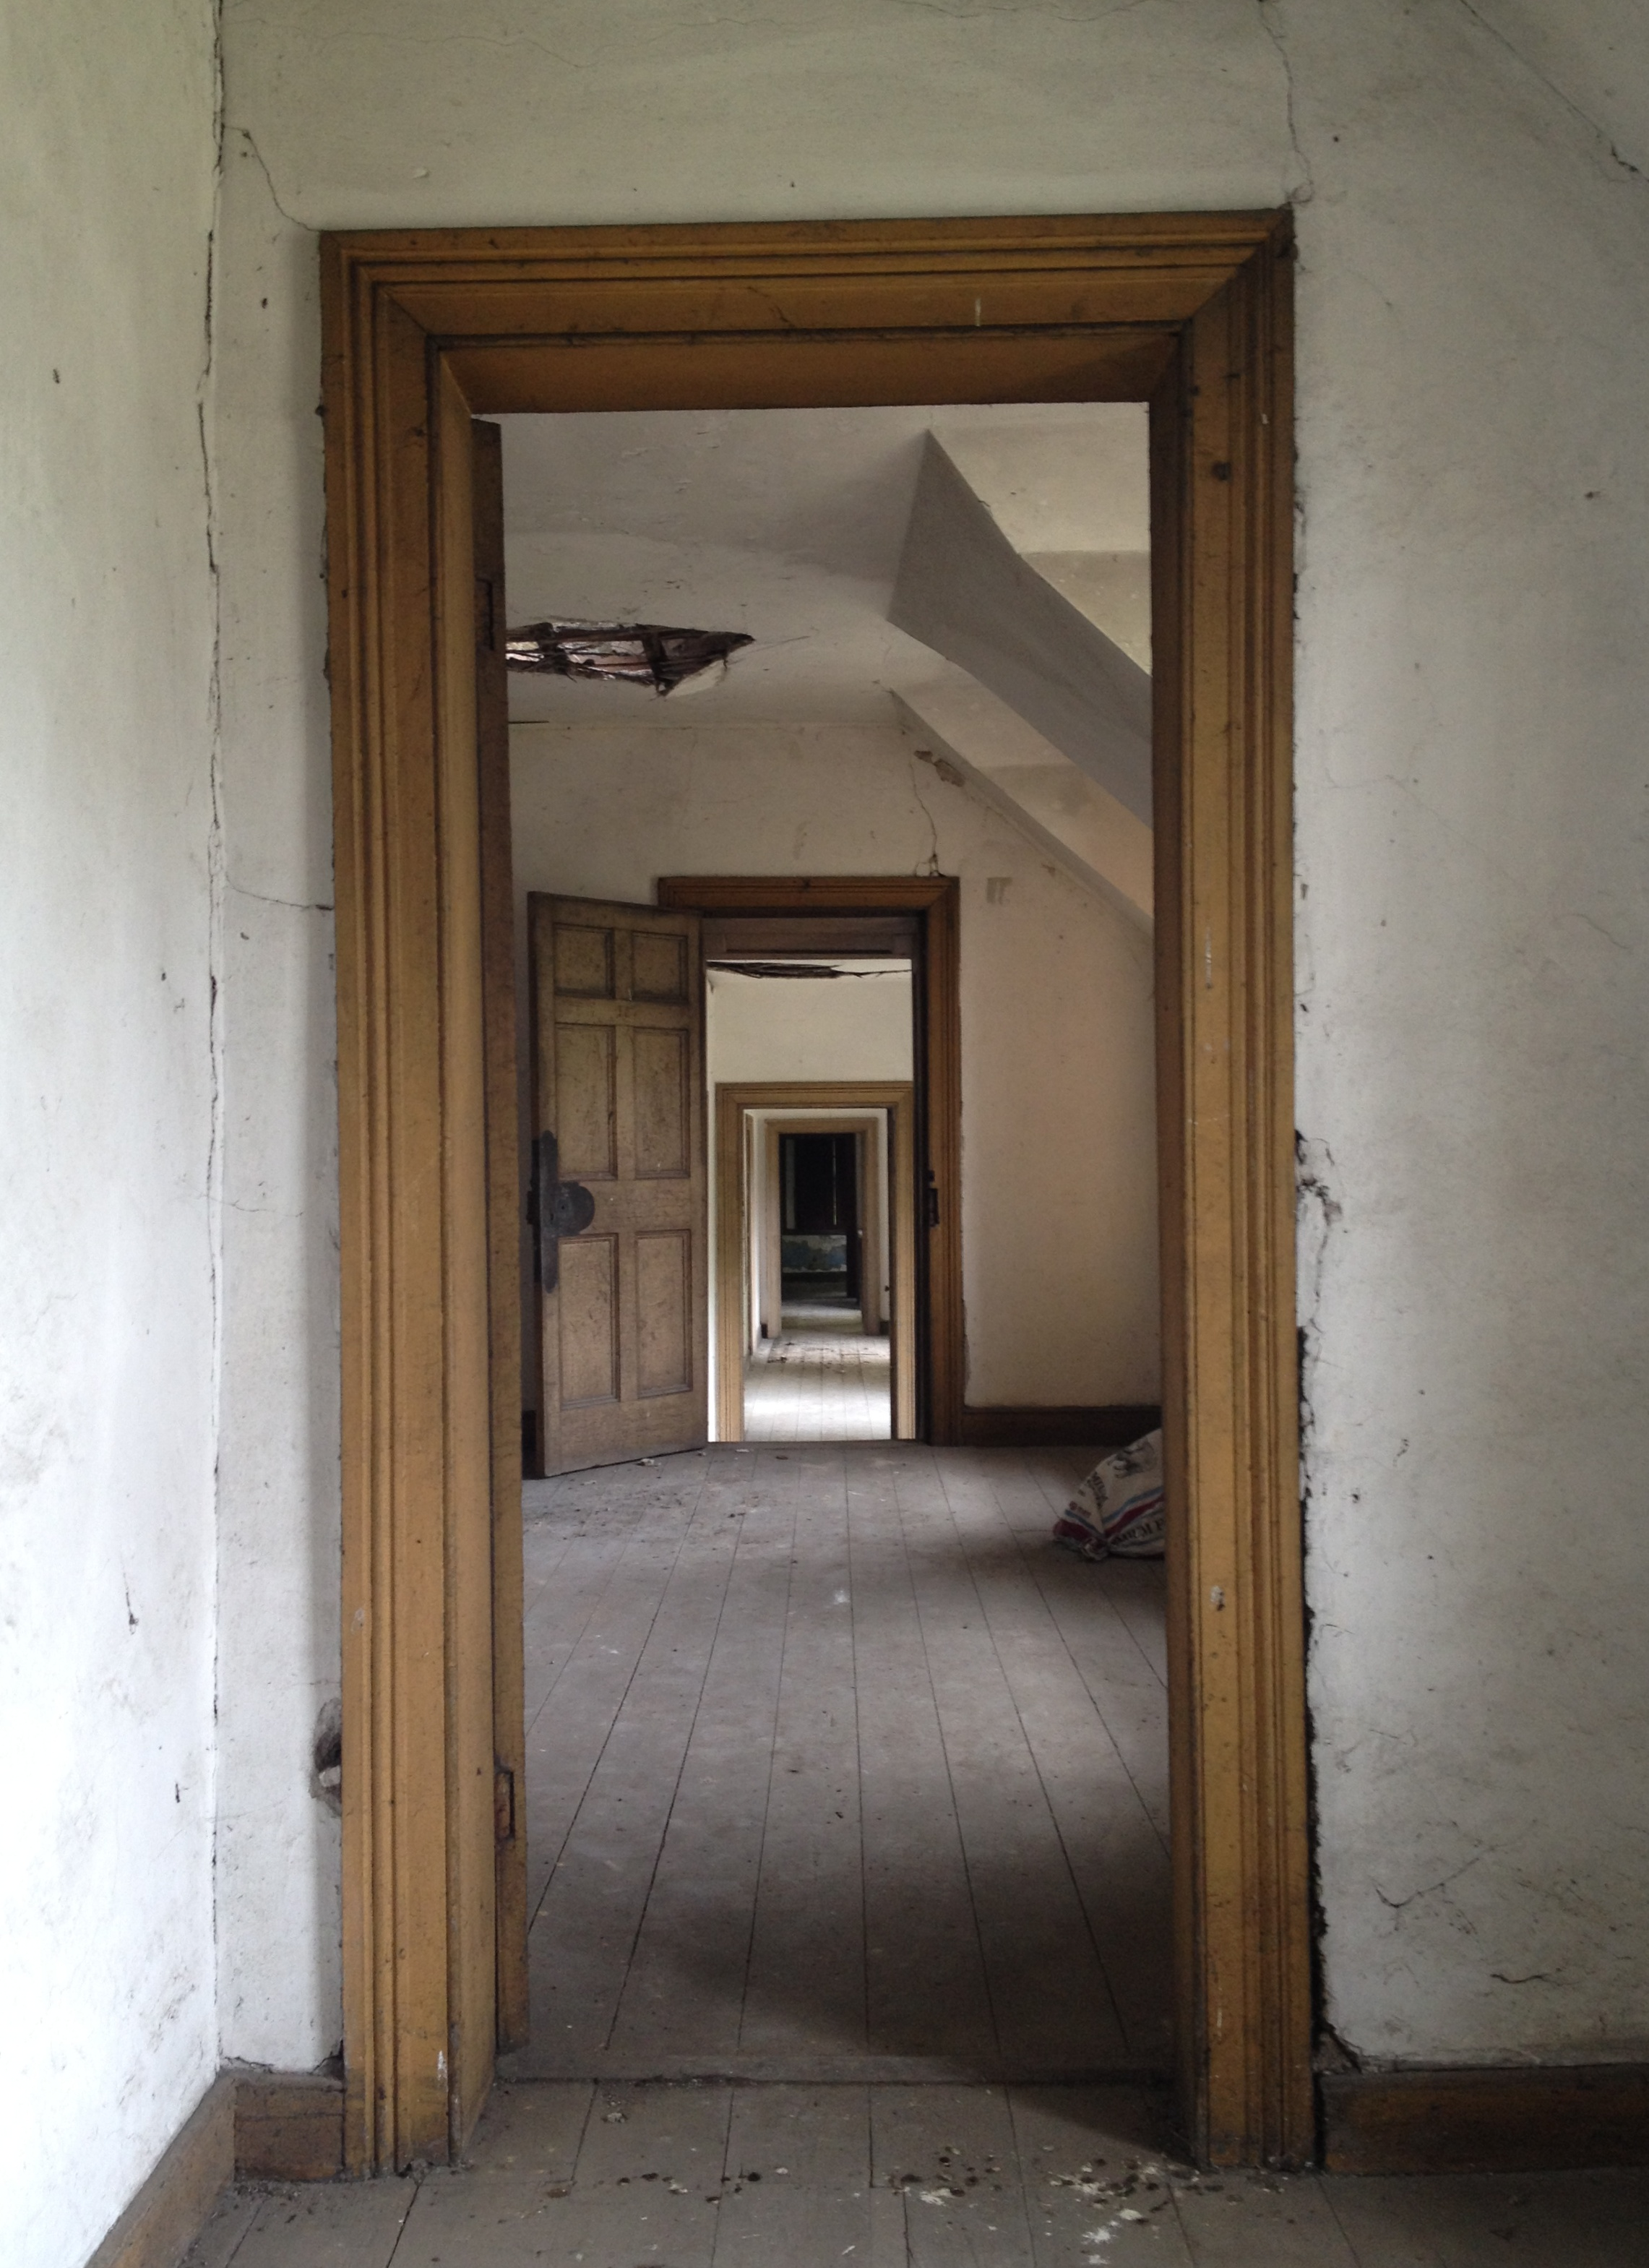 Leaving The Empty Room 171 The Irish Aesthete